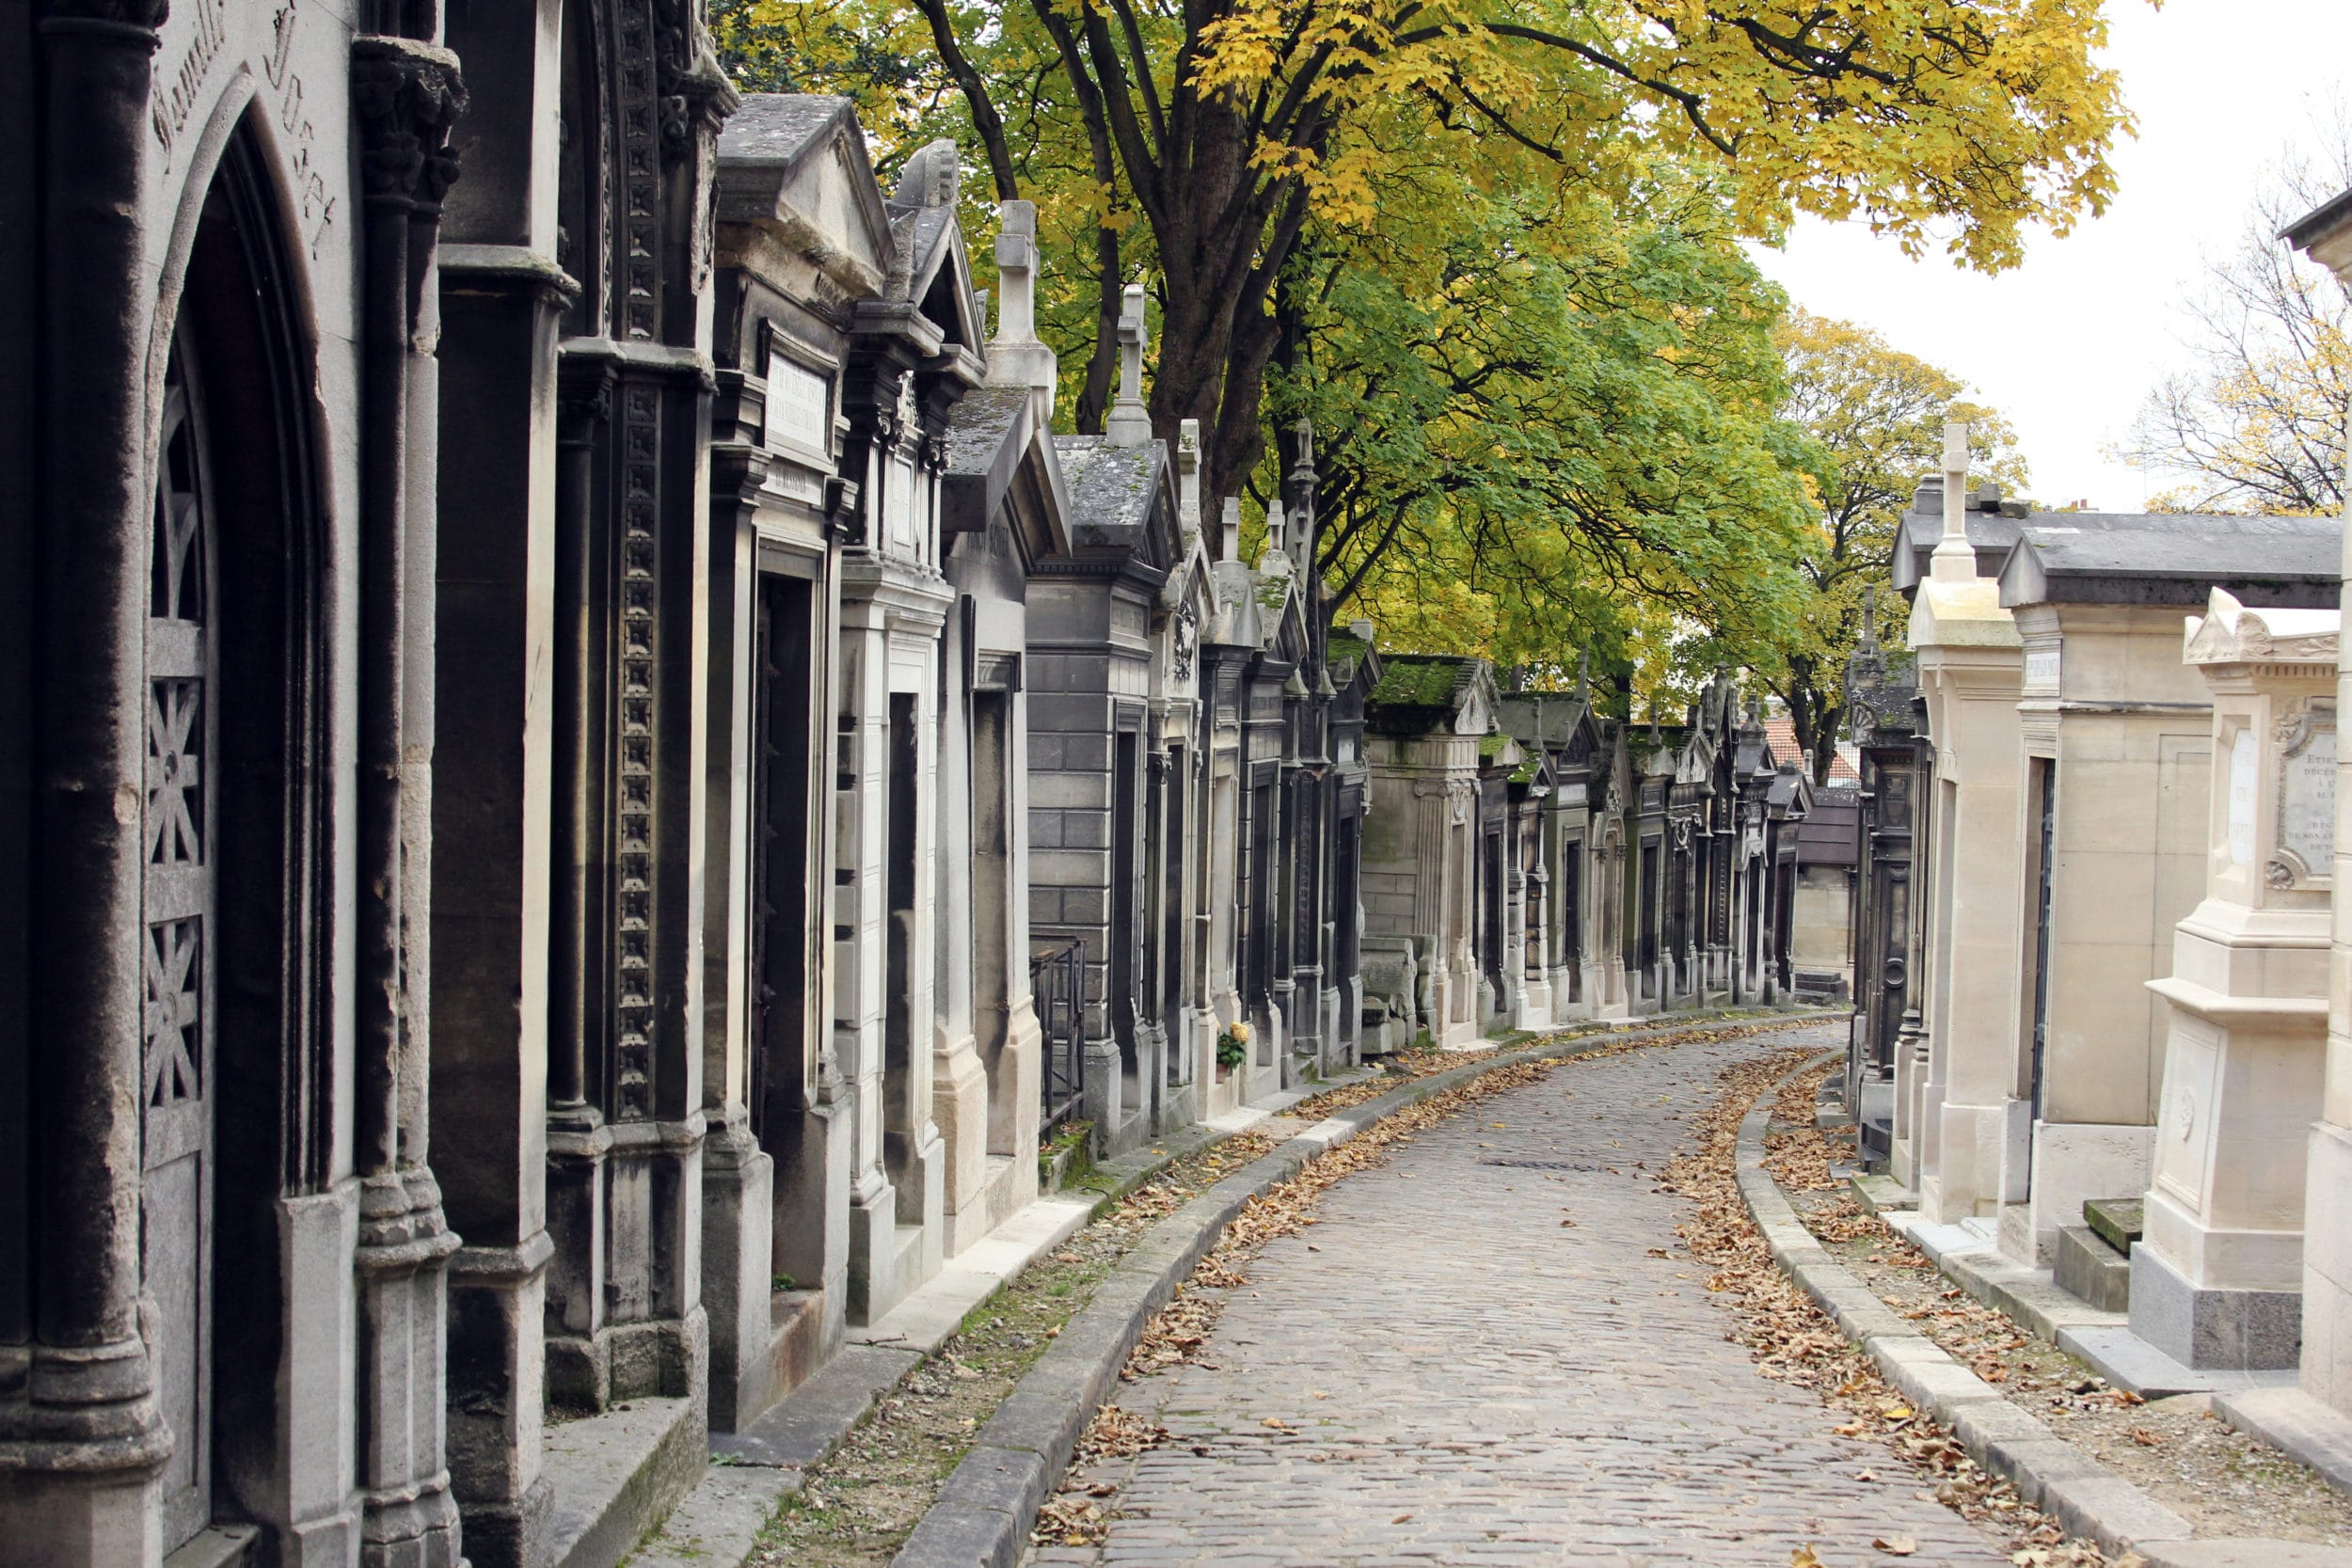 Things to do in Paris: Pere Lachaise cemetery